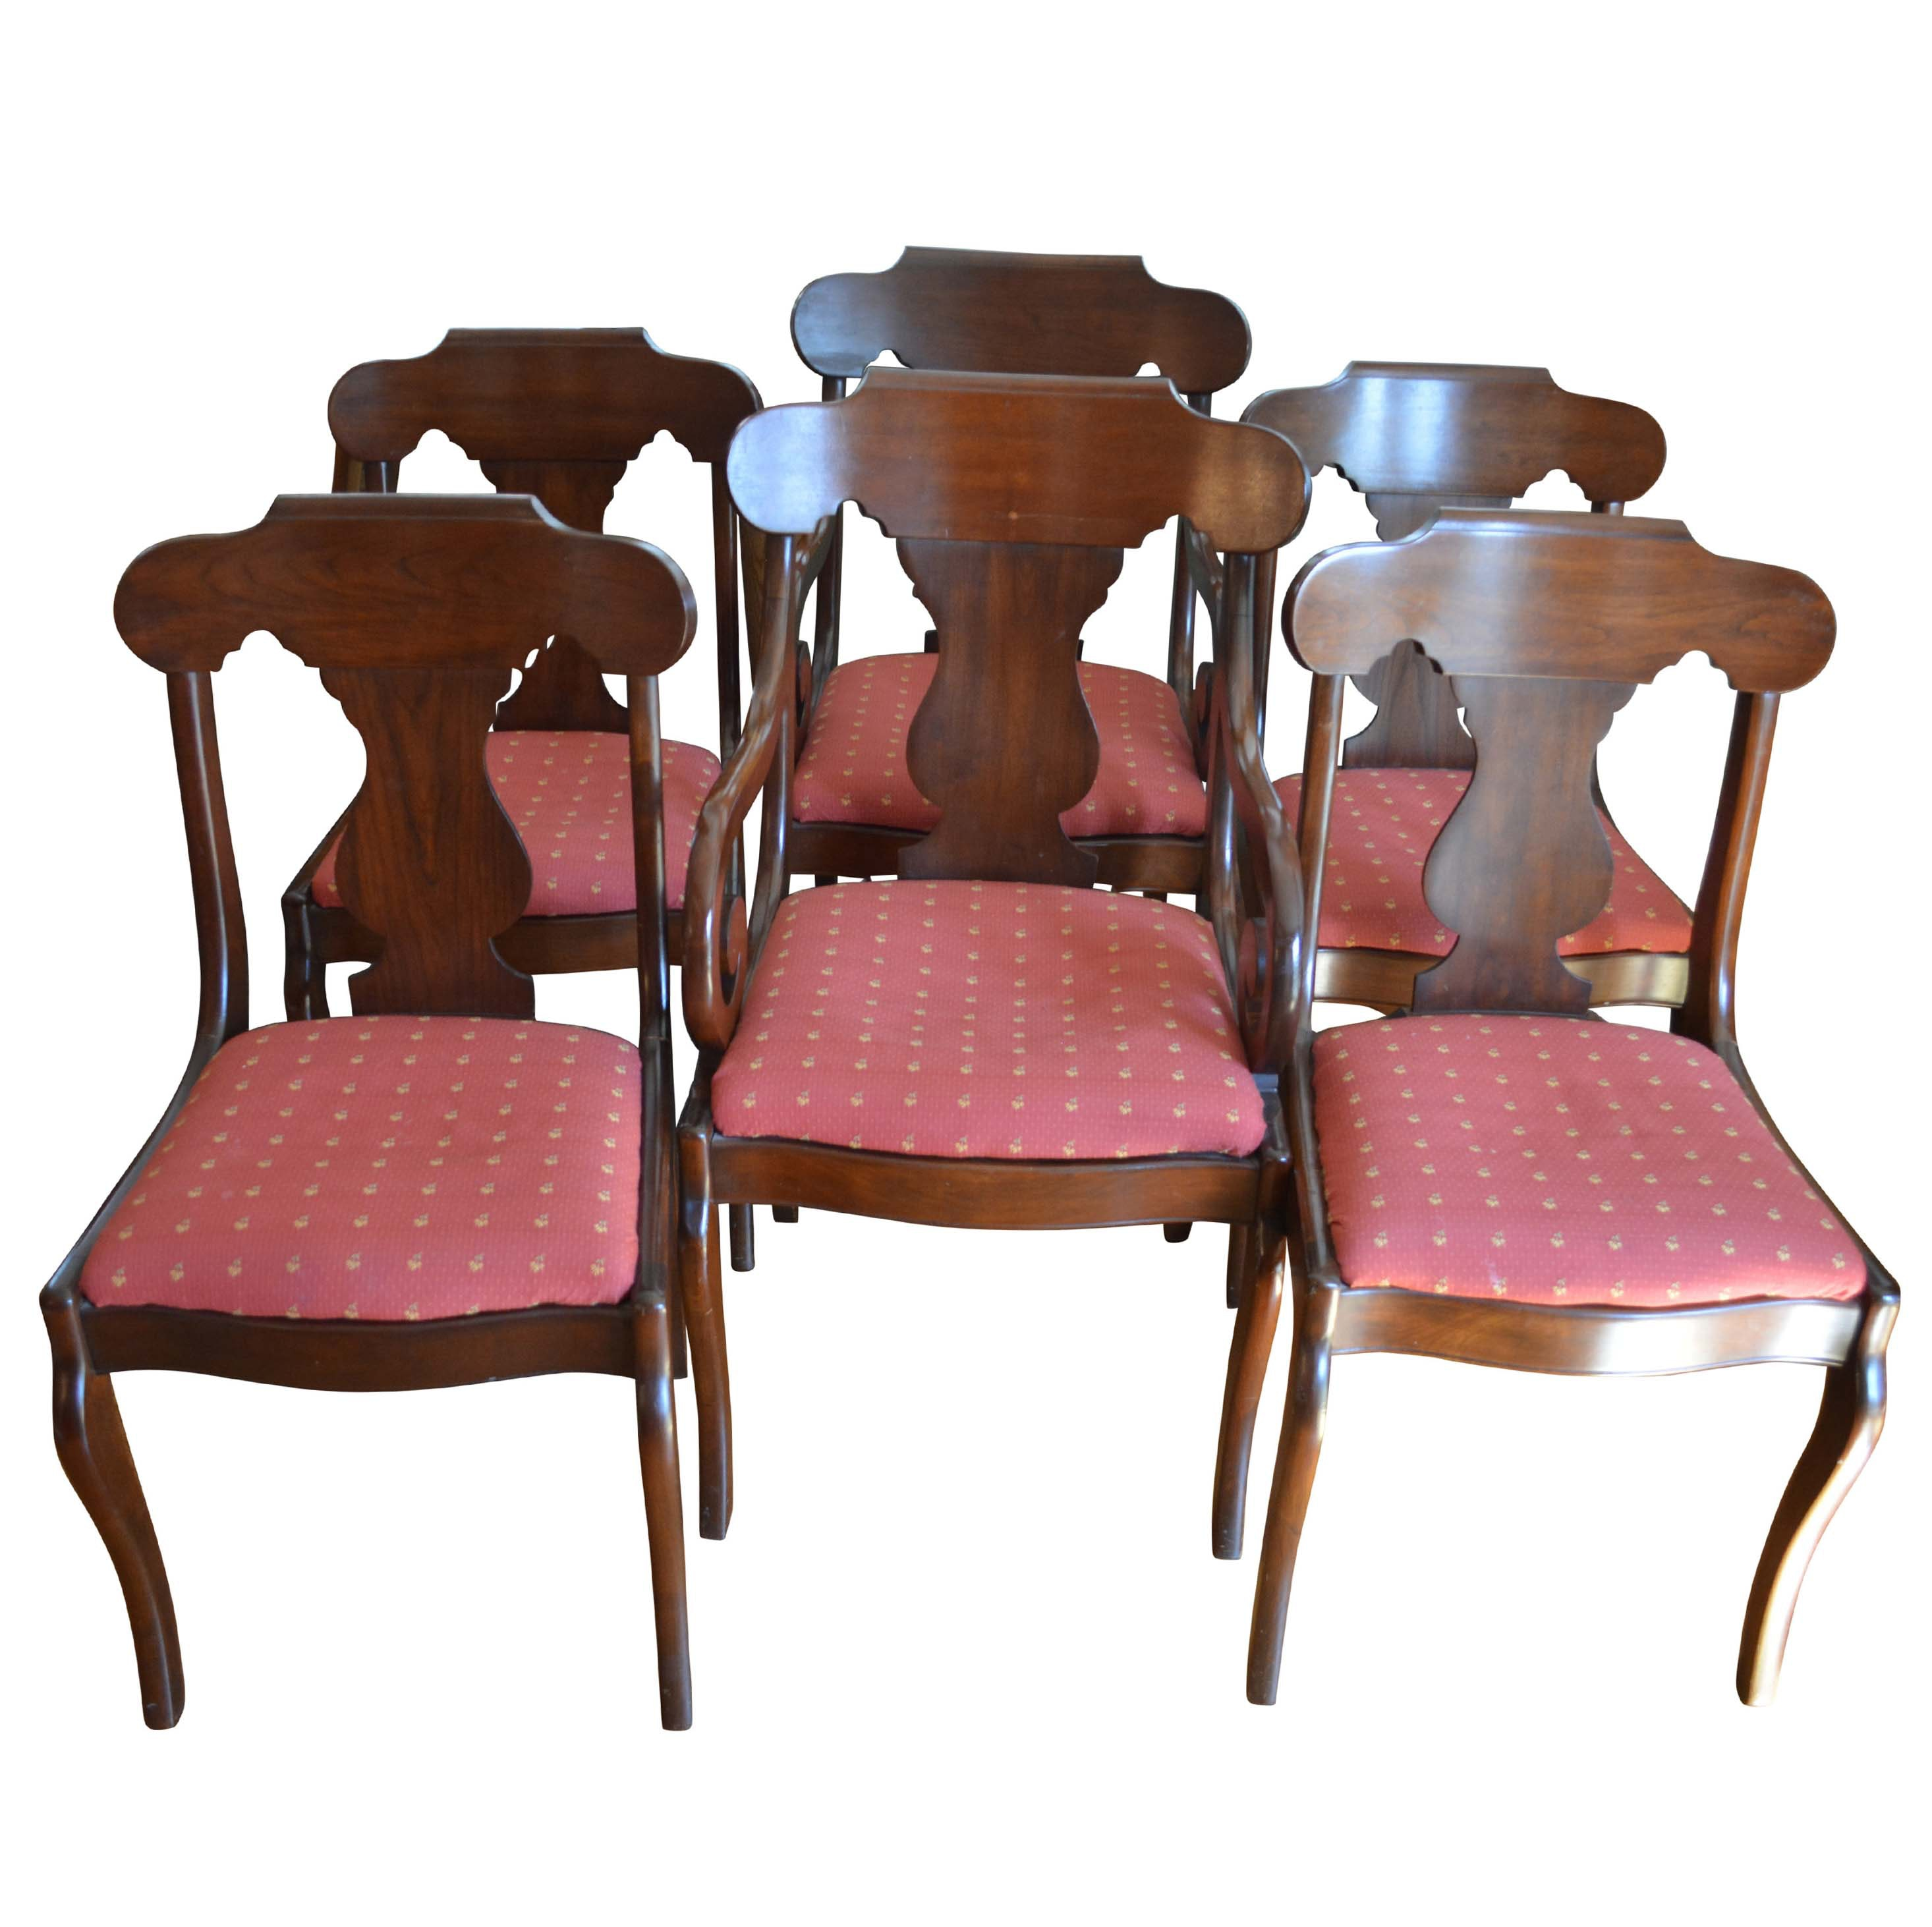 Great Vintage Pennsylvania House Regency Style Dining Chairs ...